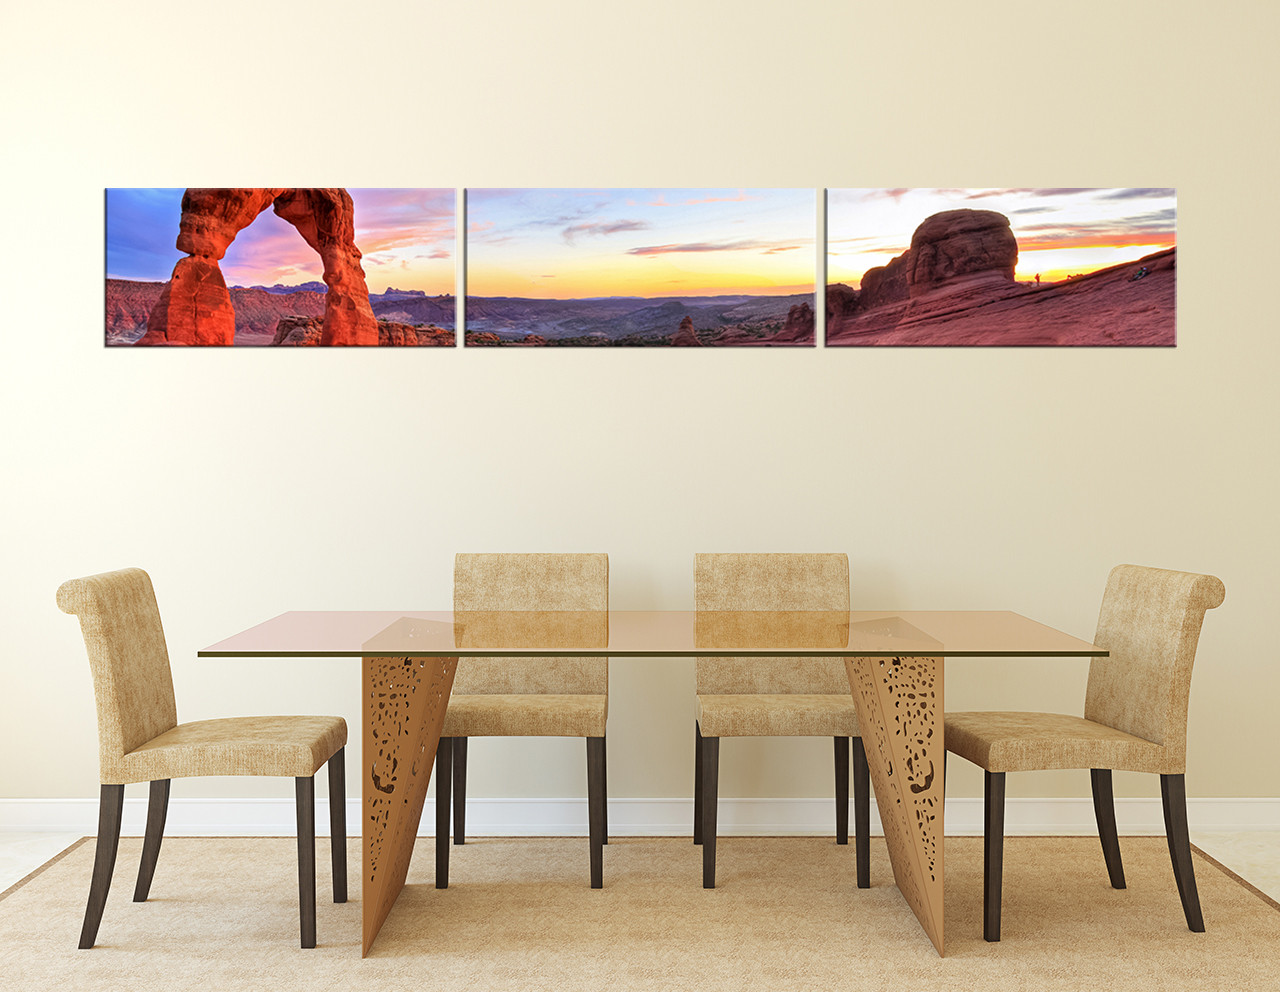 Awesome 3 Piece Large Pictures, Dining Room Canvas Art Prints, Landscape Wall  Decor, Red